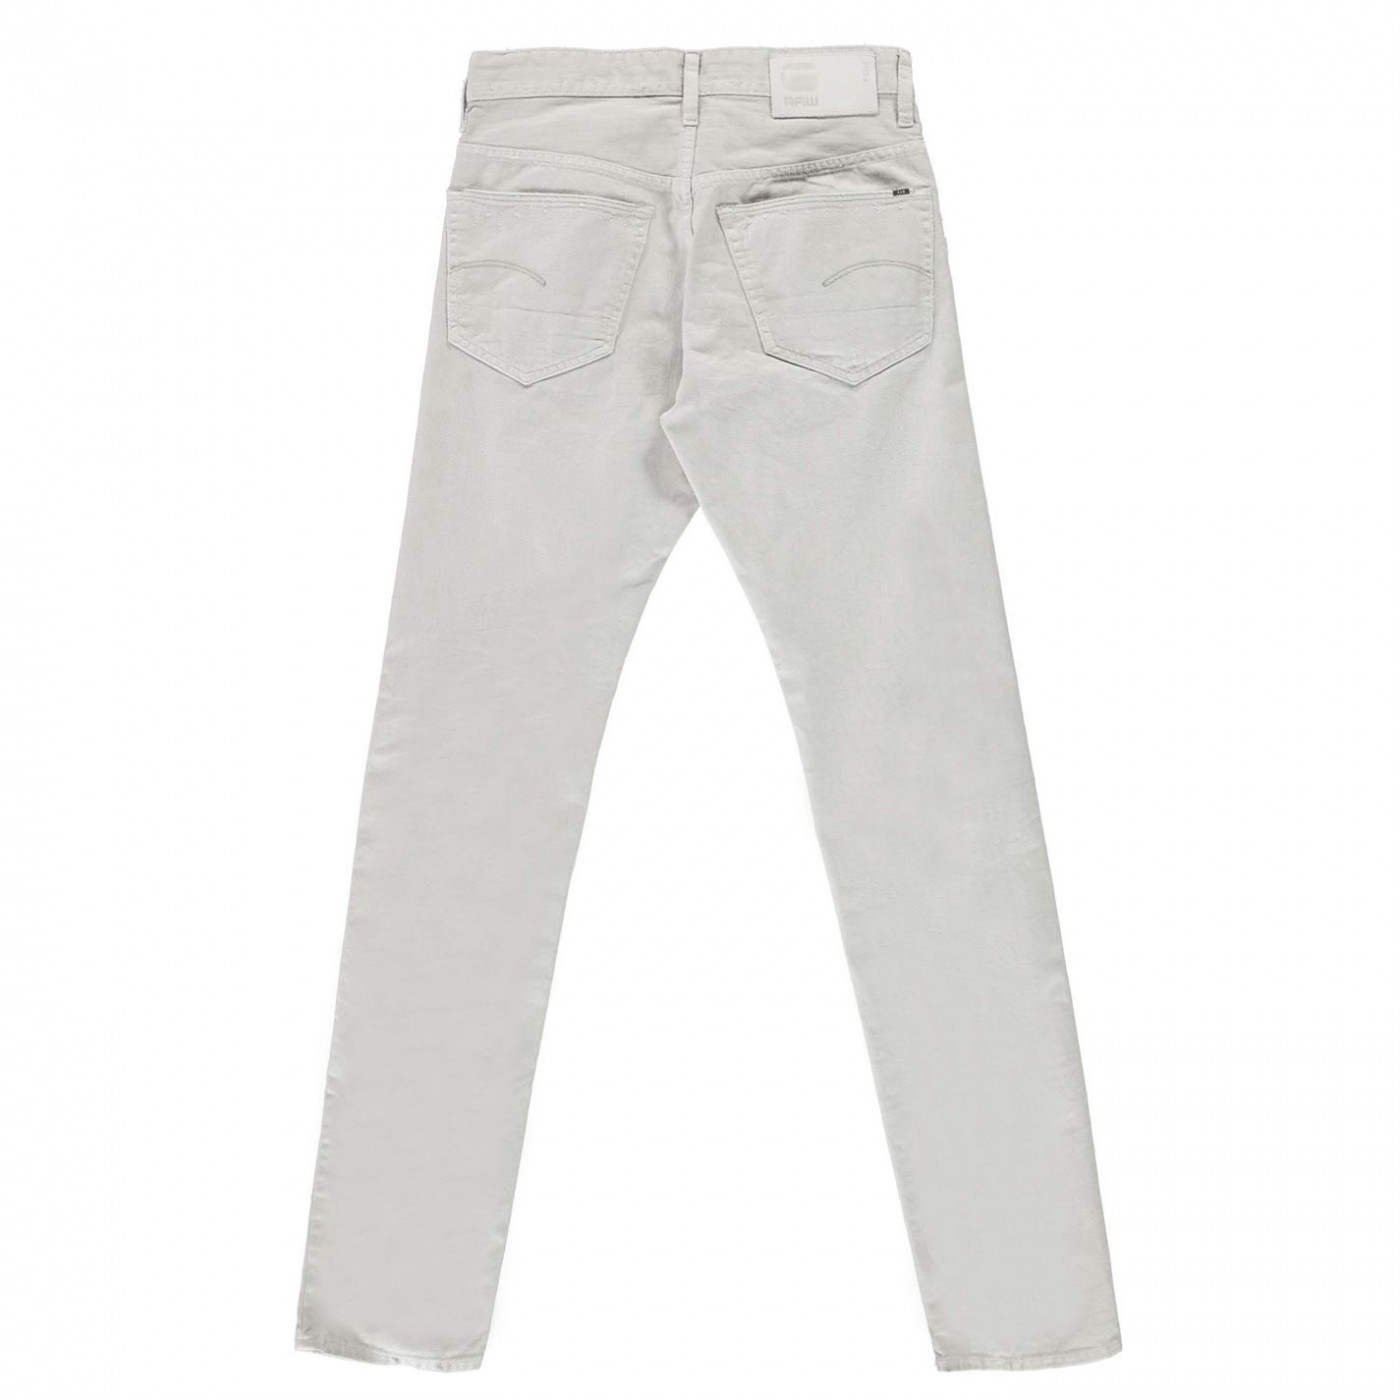 G Star Raw 3301 Tapered Mens Jeans